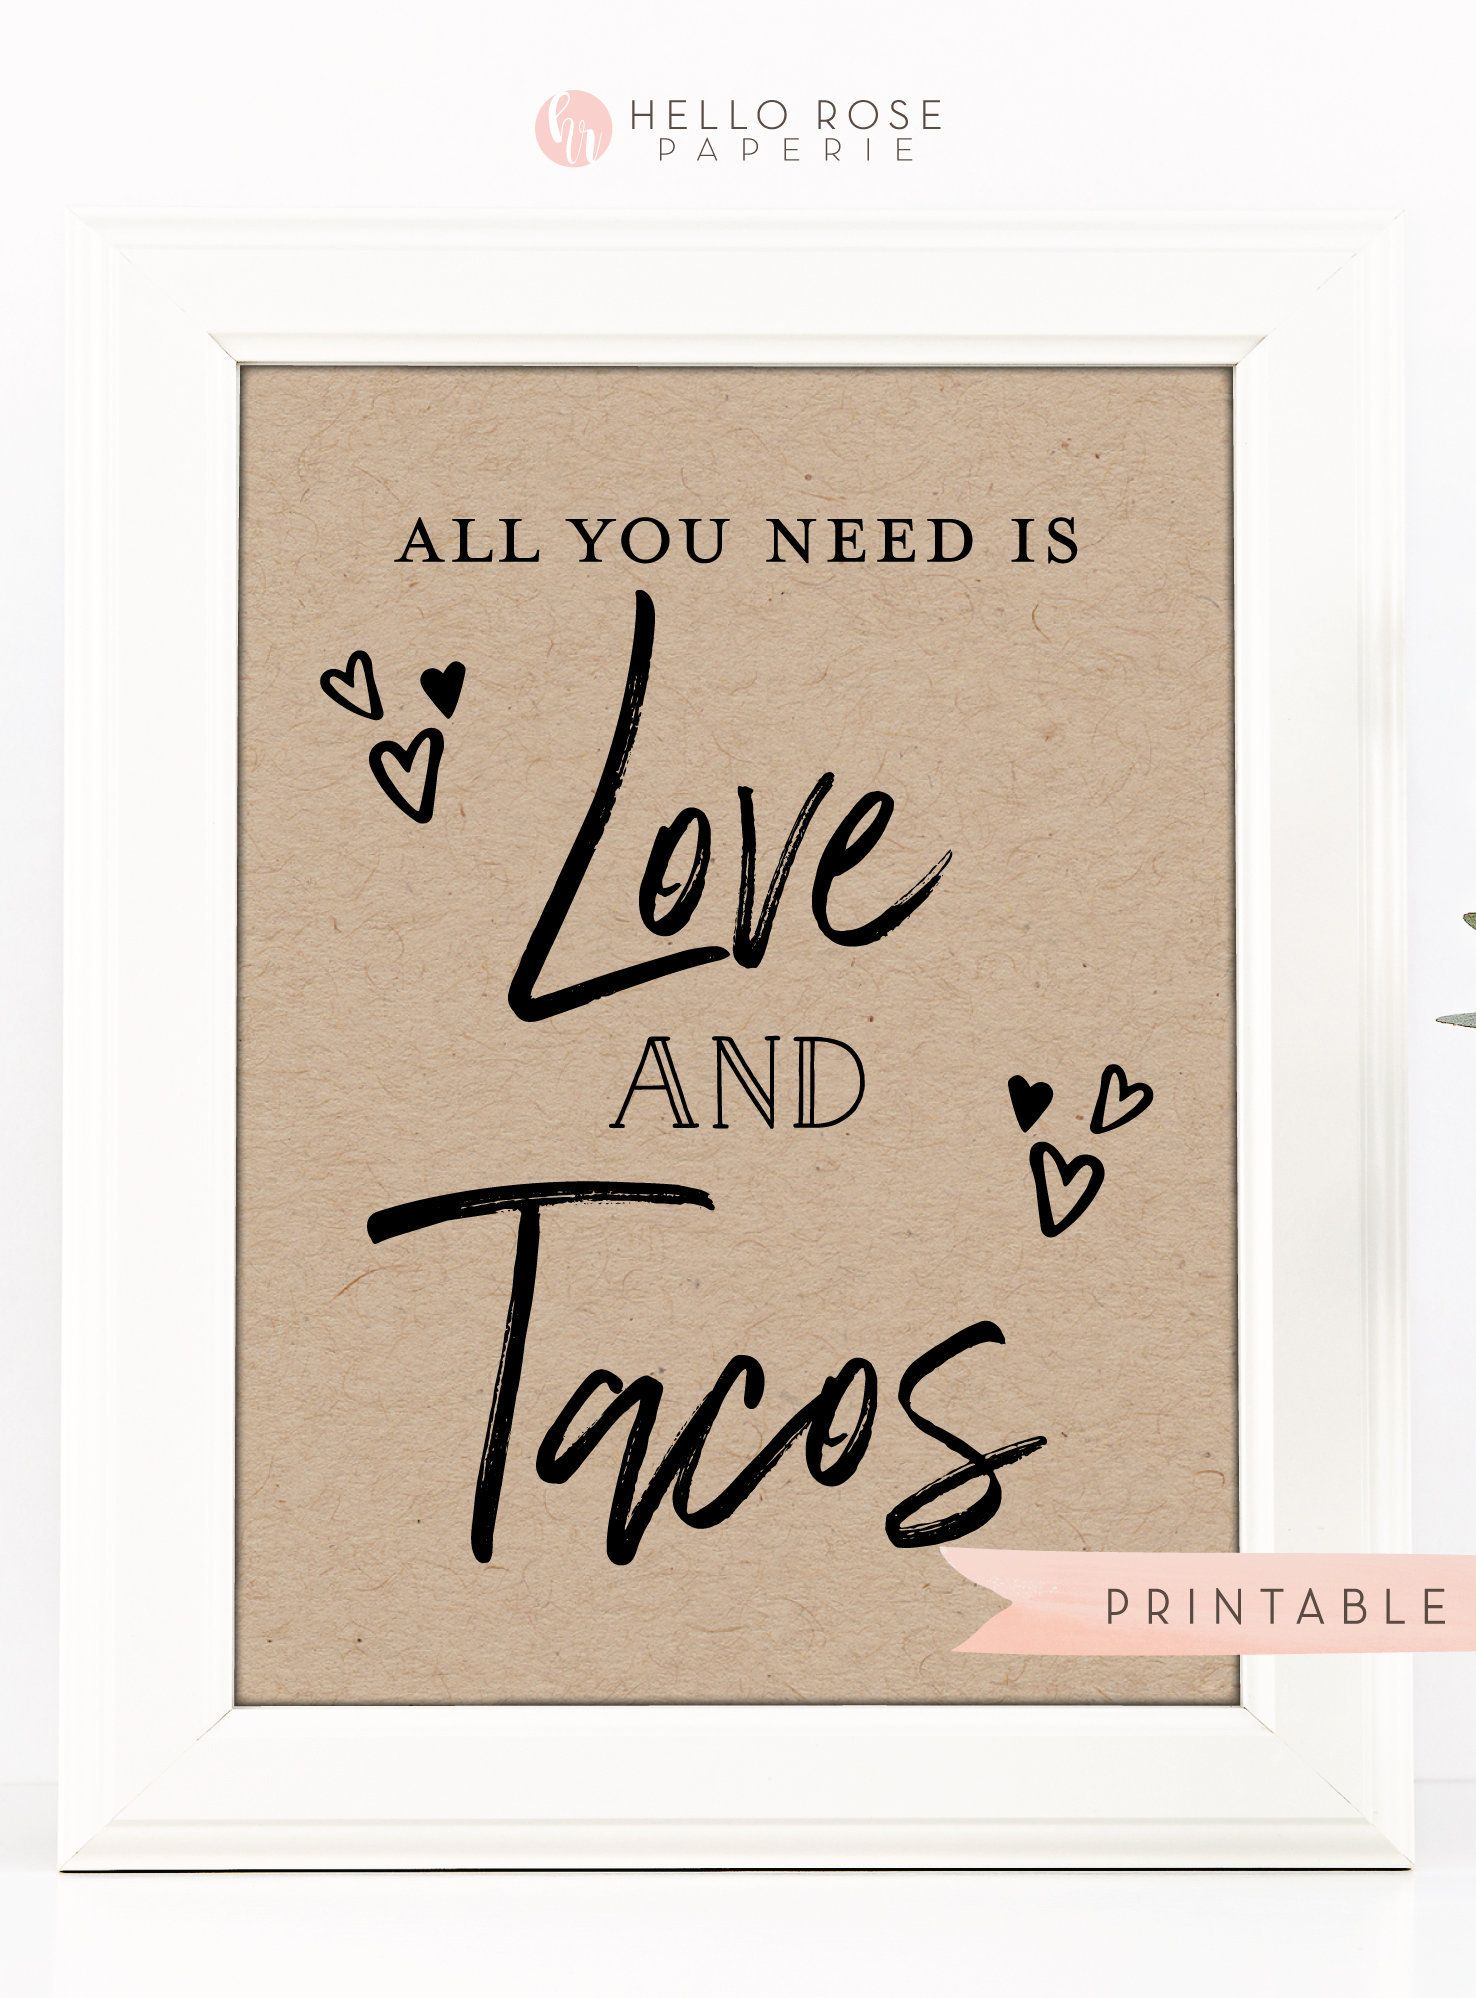 All You Need Is Love And Tacos Printable Download Rustic Etsy In 2021 Rustic Modern Wedding Wedding Bridal Shower Wedding Modern